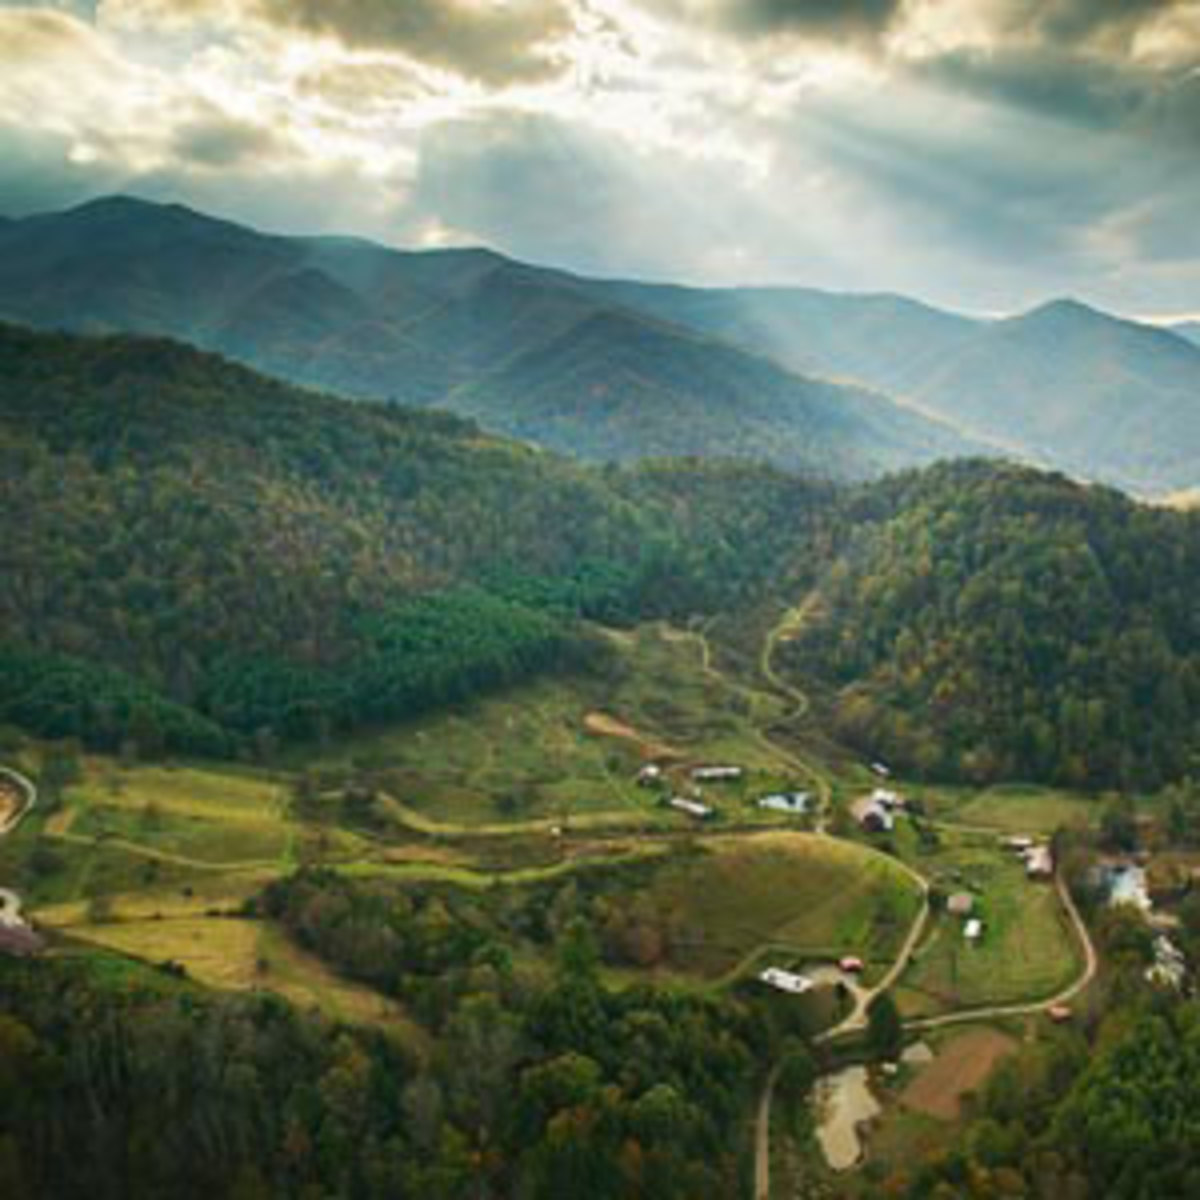 The remote mountain communities of western North Carolina had all kinds of weird and unusual customs like sin eaters.